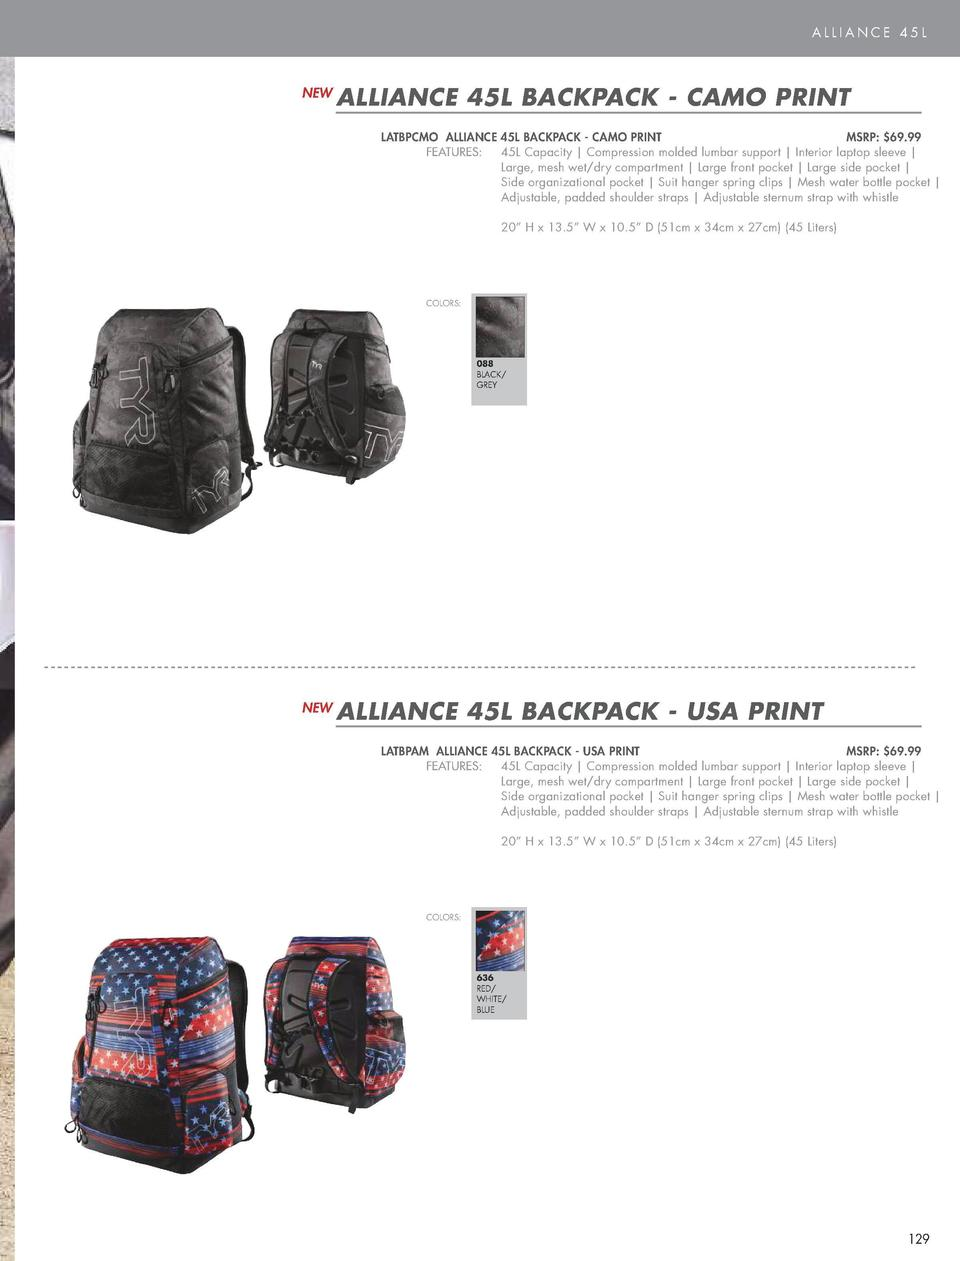 ALLIANCE 45L  NEW  ALLIANCE 45L BACKPACK - CAMO PRINT LATBPCMO ALLIANCE  FEATURES            45L BACKPACK - CAMO PRINT  MS...